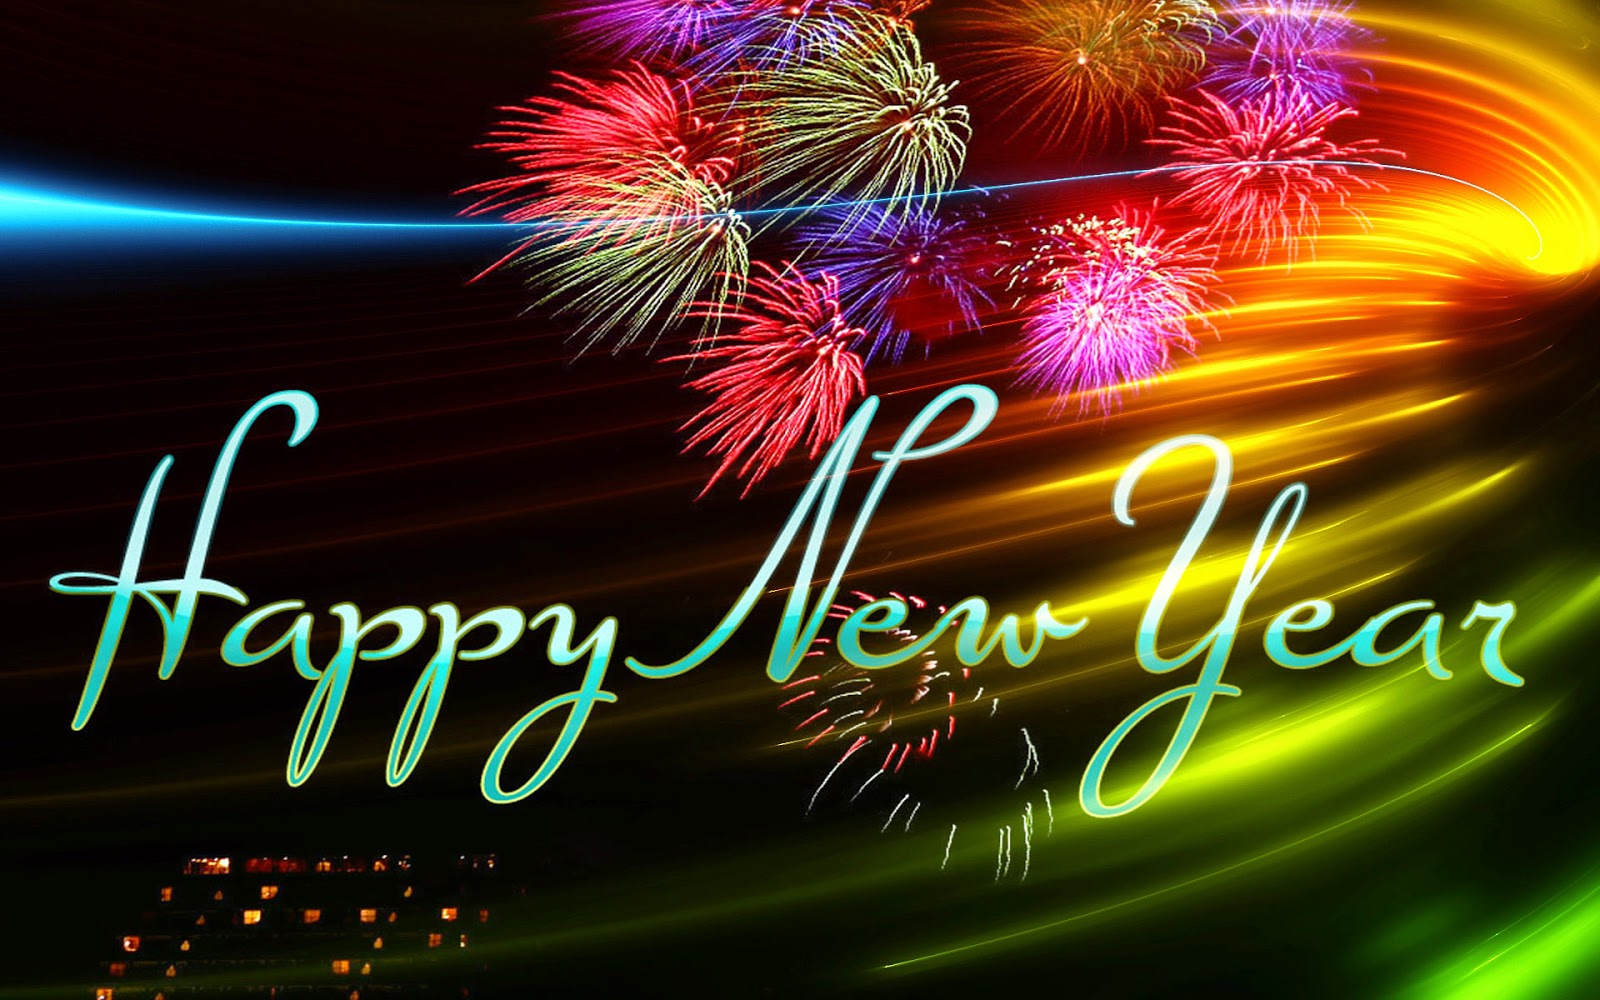 2020 Happy New Year HD Wallpapers, Images (Free Download ...